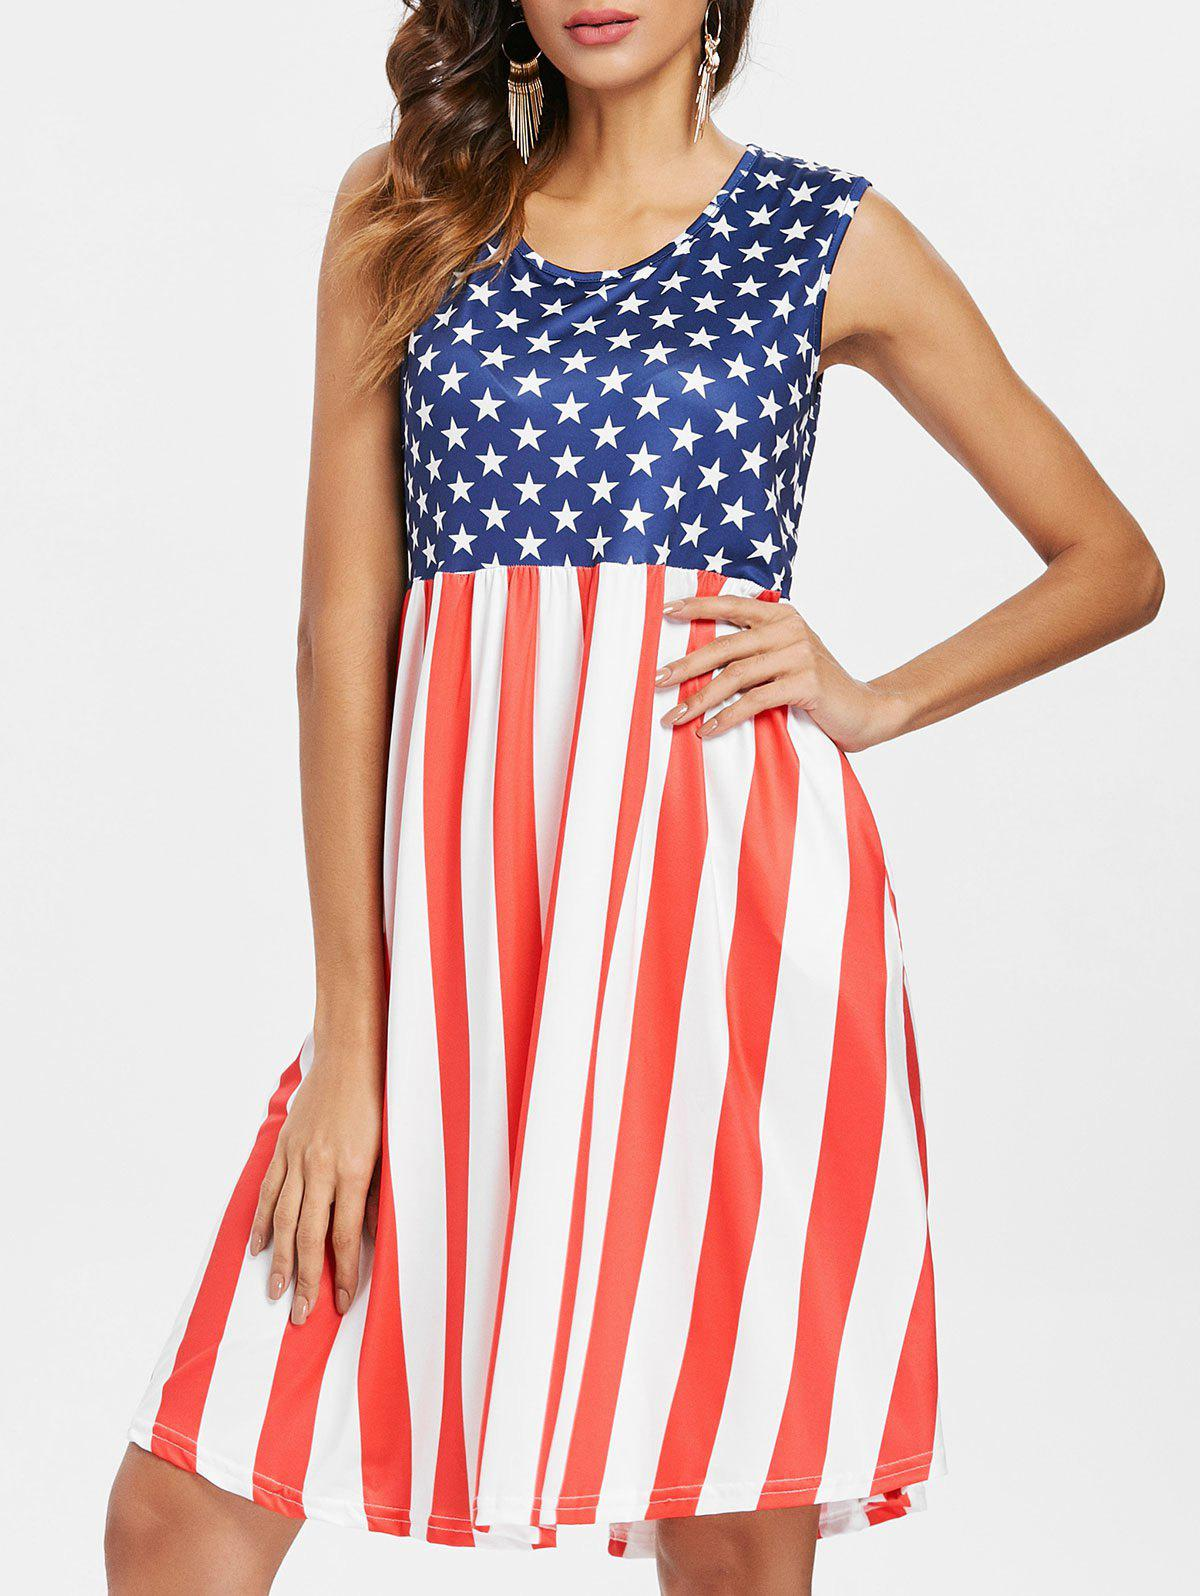 Fashion Sleeveless American Flag Dress